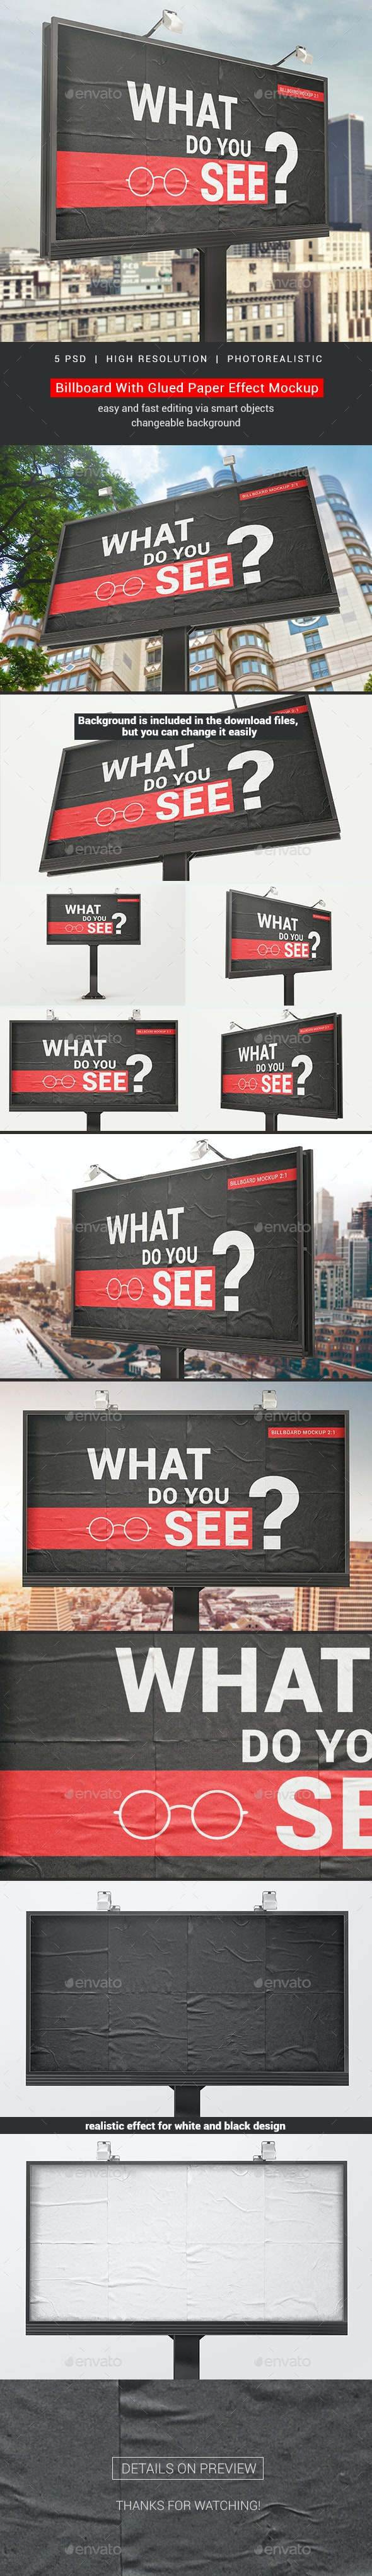 Billboard With Glued Paper Effect Mockups - Miscellaneous Print